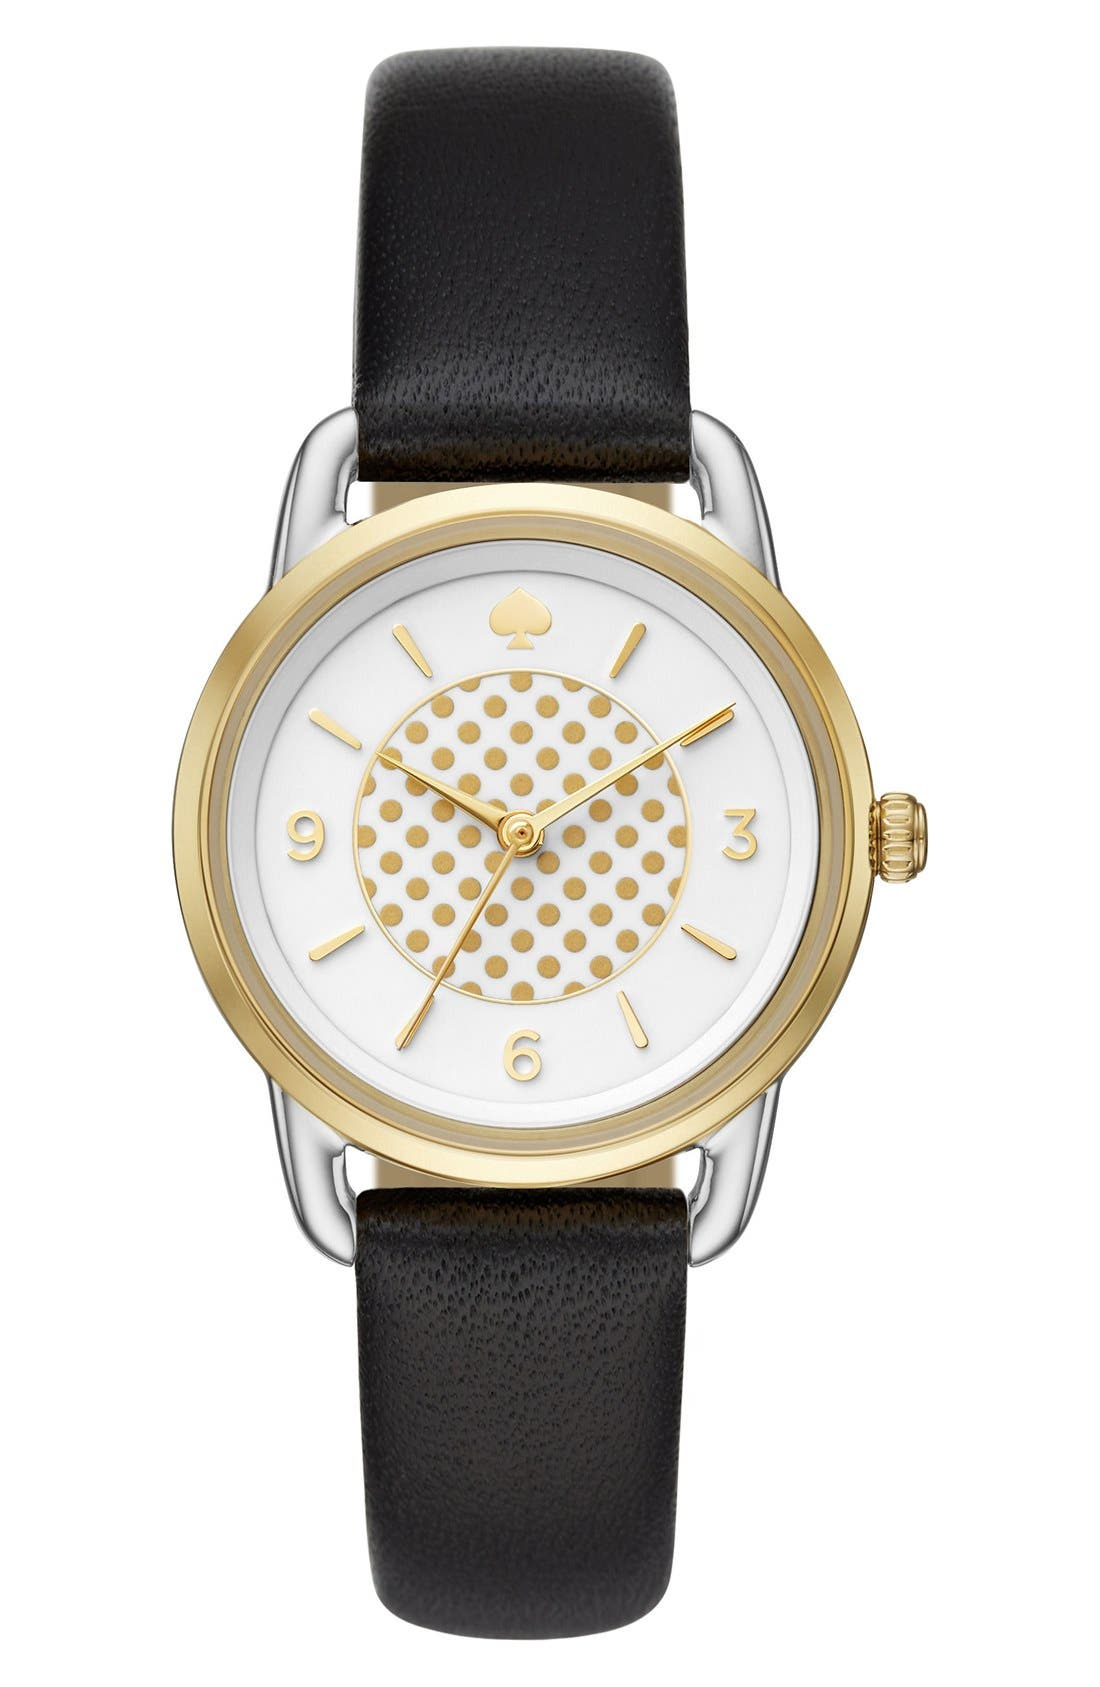 KATE SPADE NEW YORK boathouse leather strap watch, 30mm